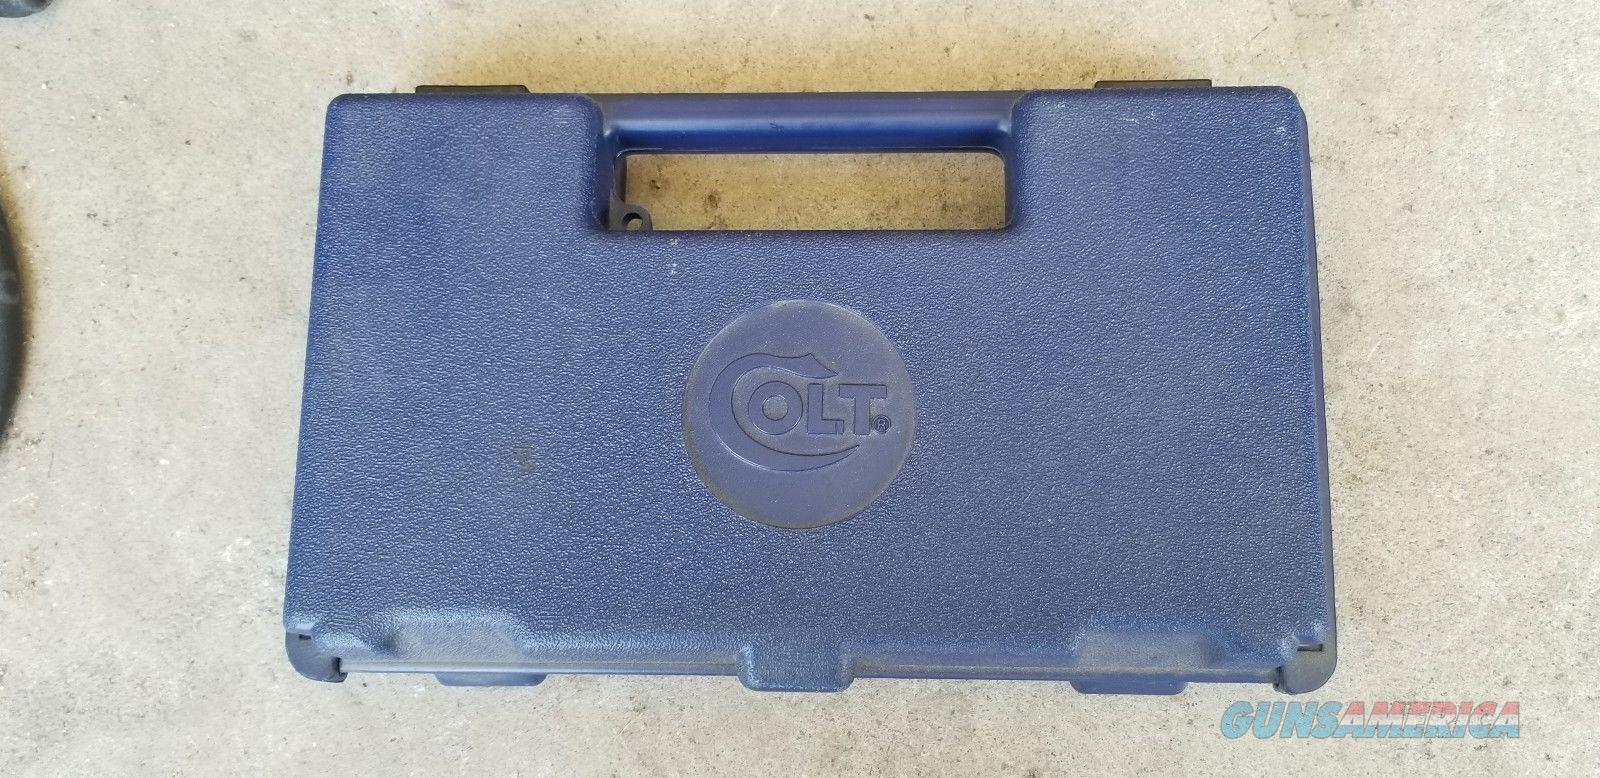 Colt-Revolver-Blue-Hard-Plastic-Gun-Case  Non-Guns > Gun Cases